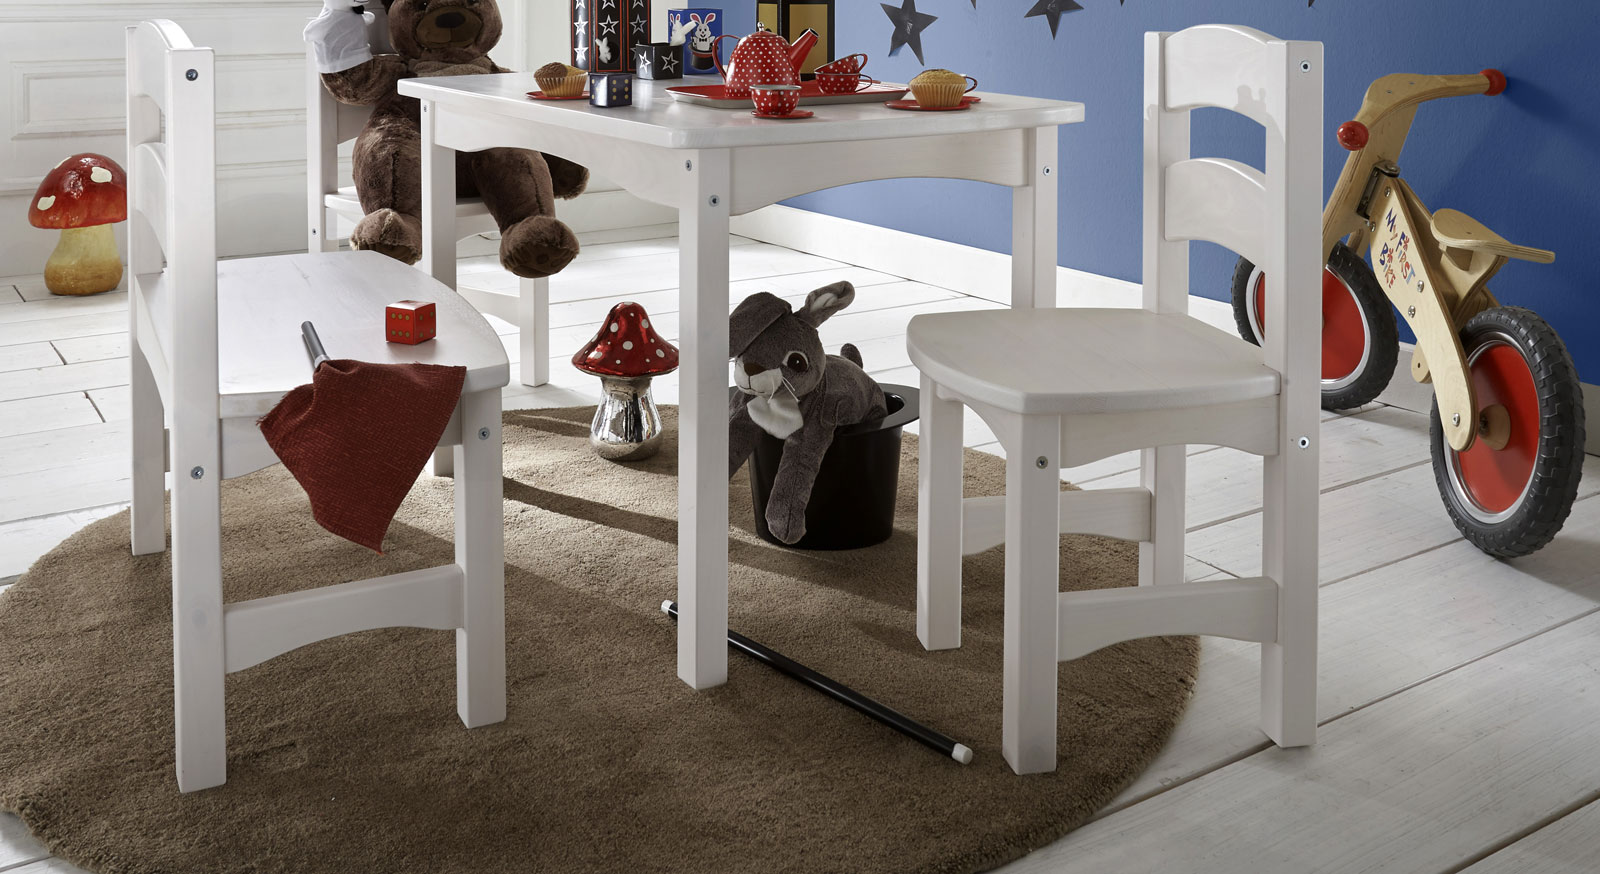 sitzgruppe f r kinder mit tisch bank und st hlen kids paradise. Black Bedroom Furniture Sets. Home Design Ideas